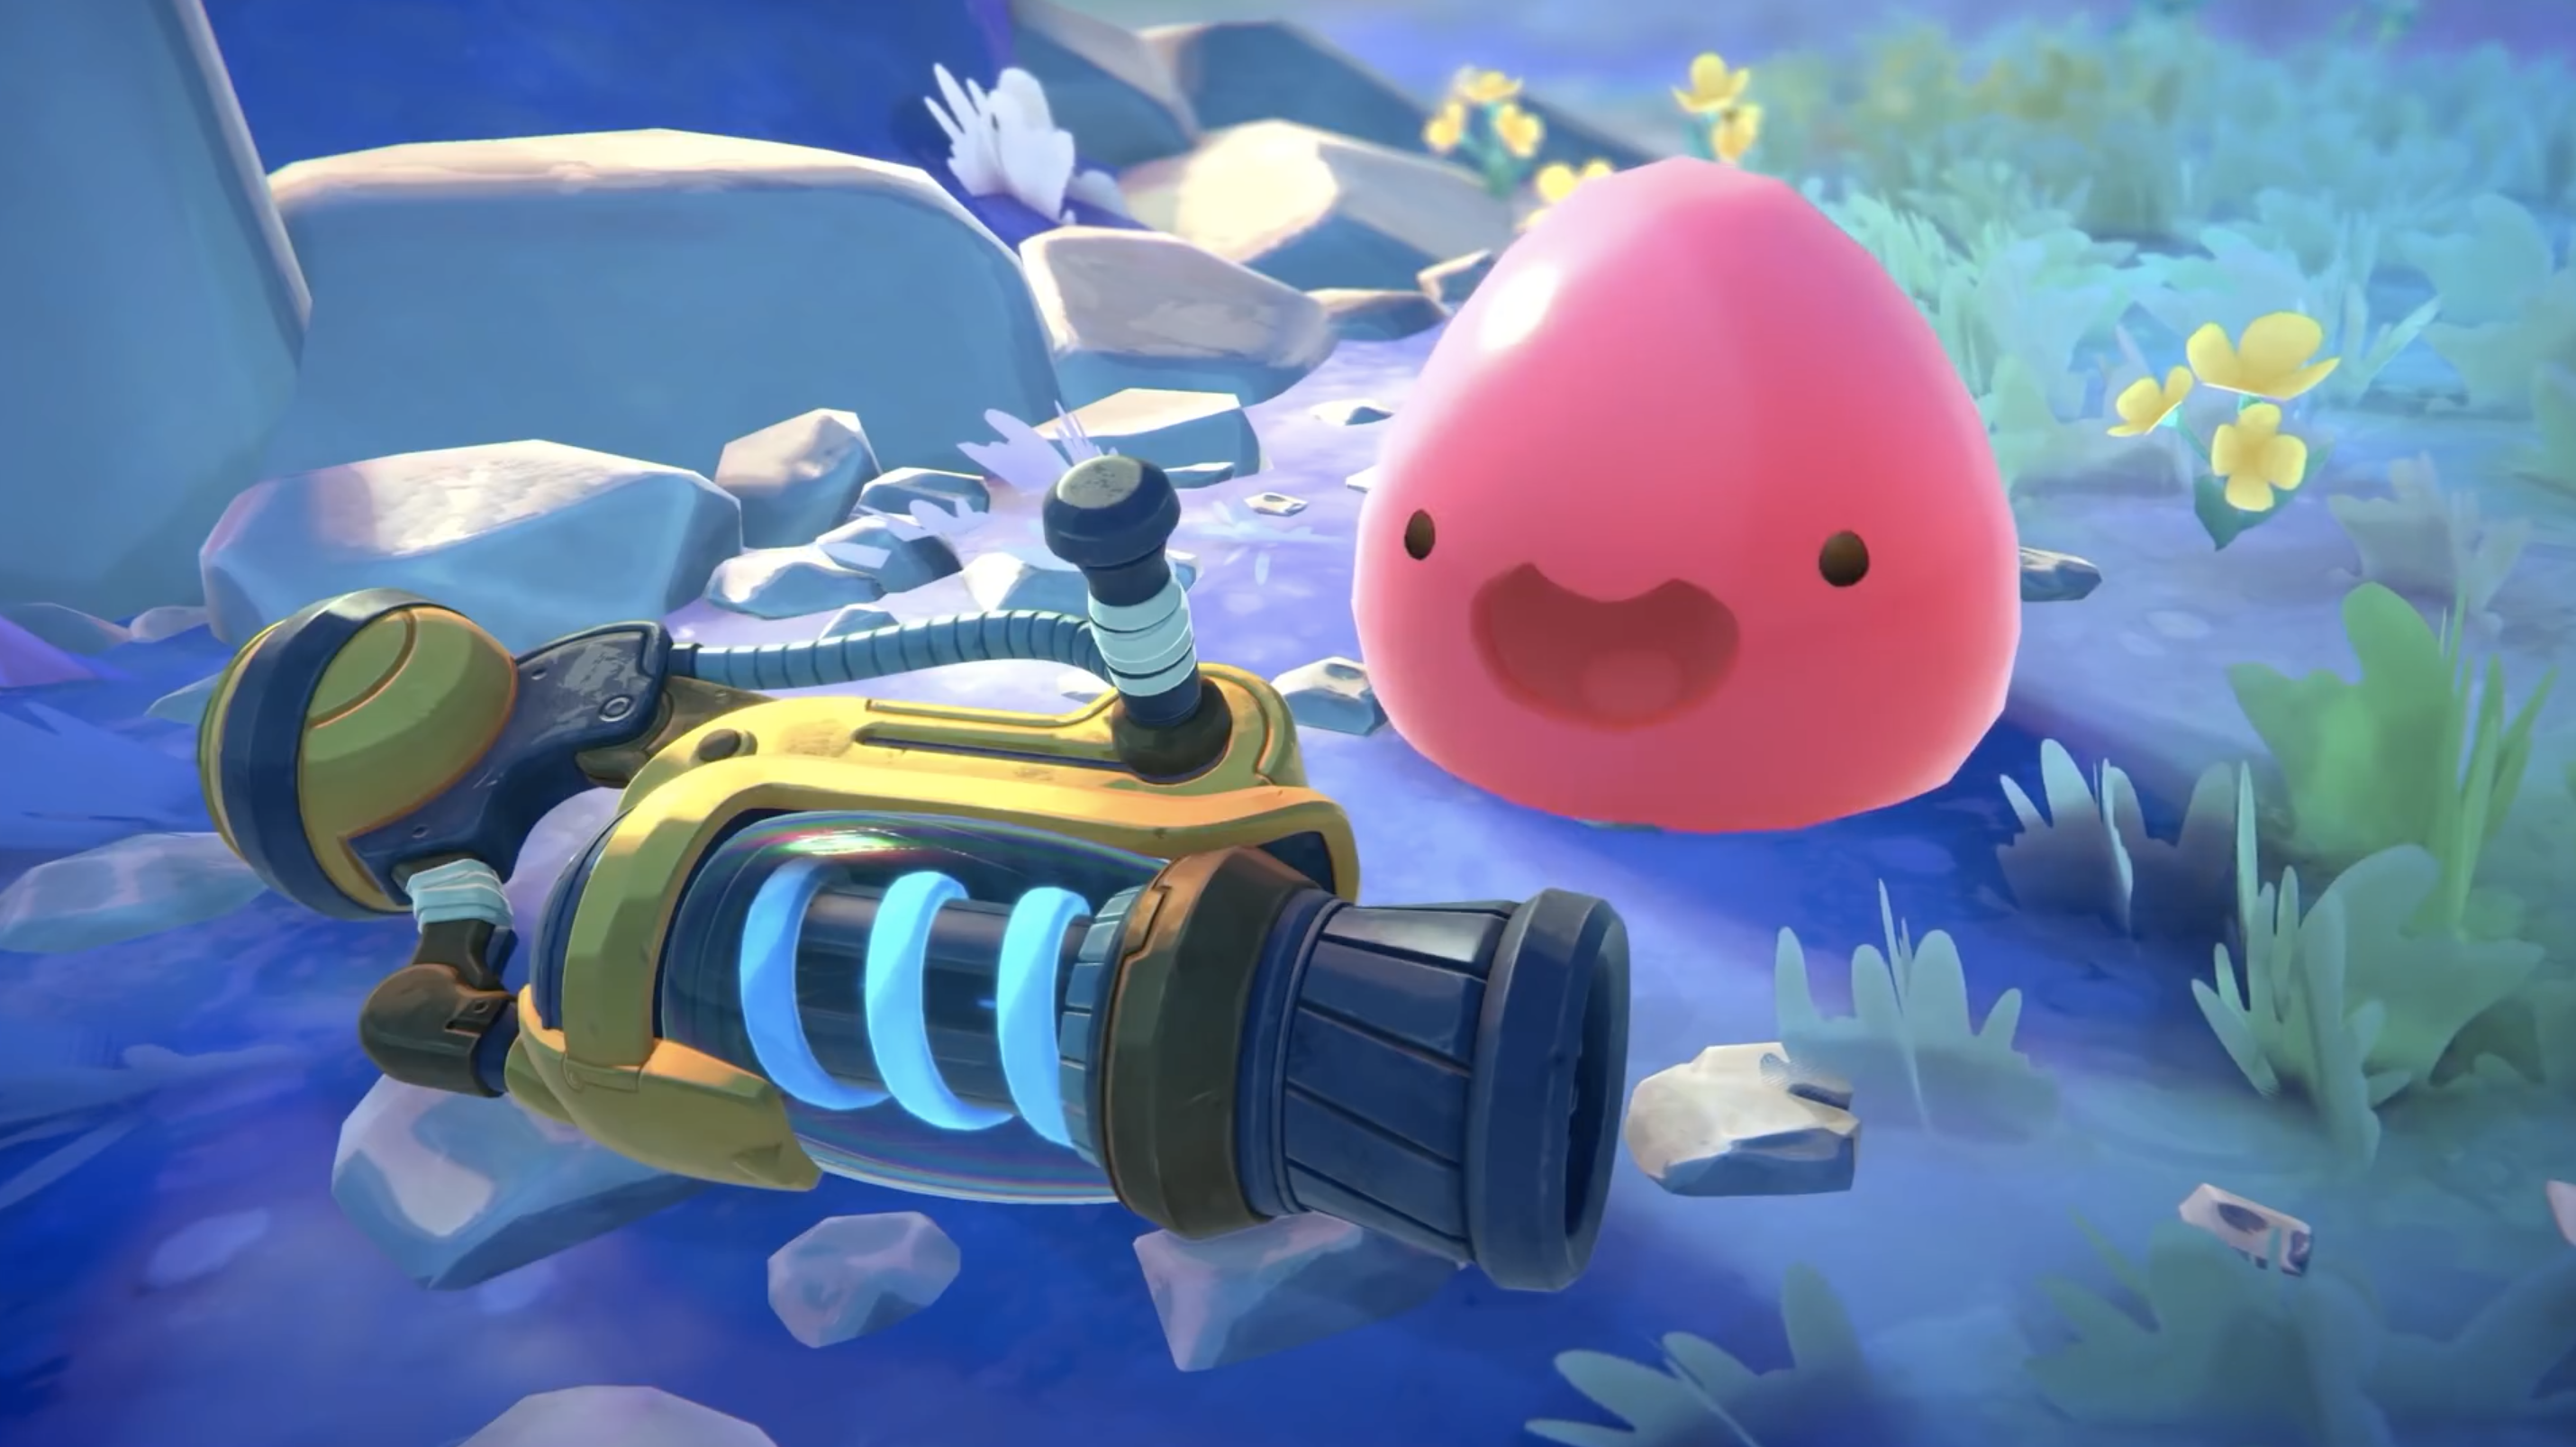 E3 2021: Time to Suck It Up and Get Ready for Slime Rancher 2